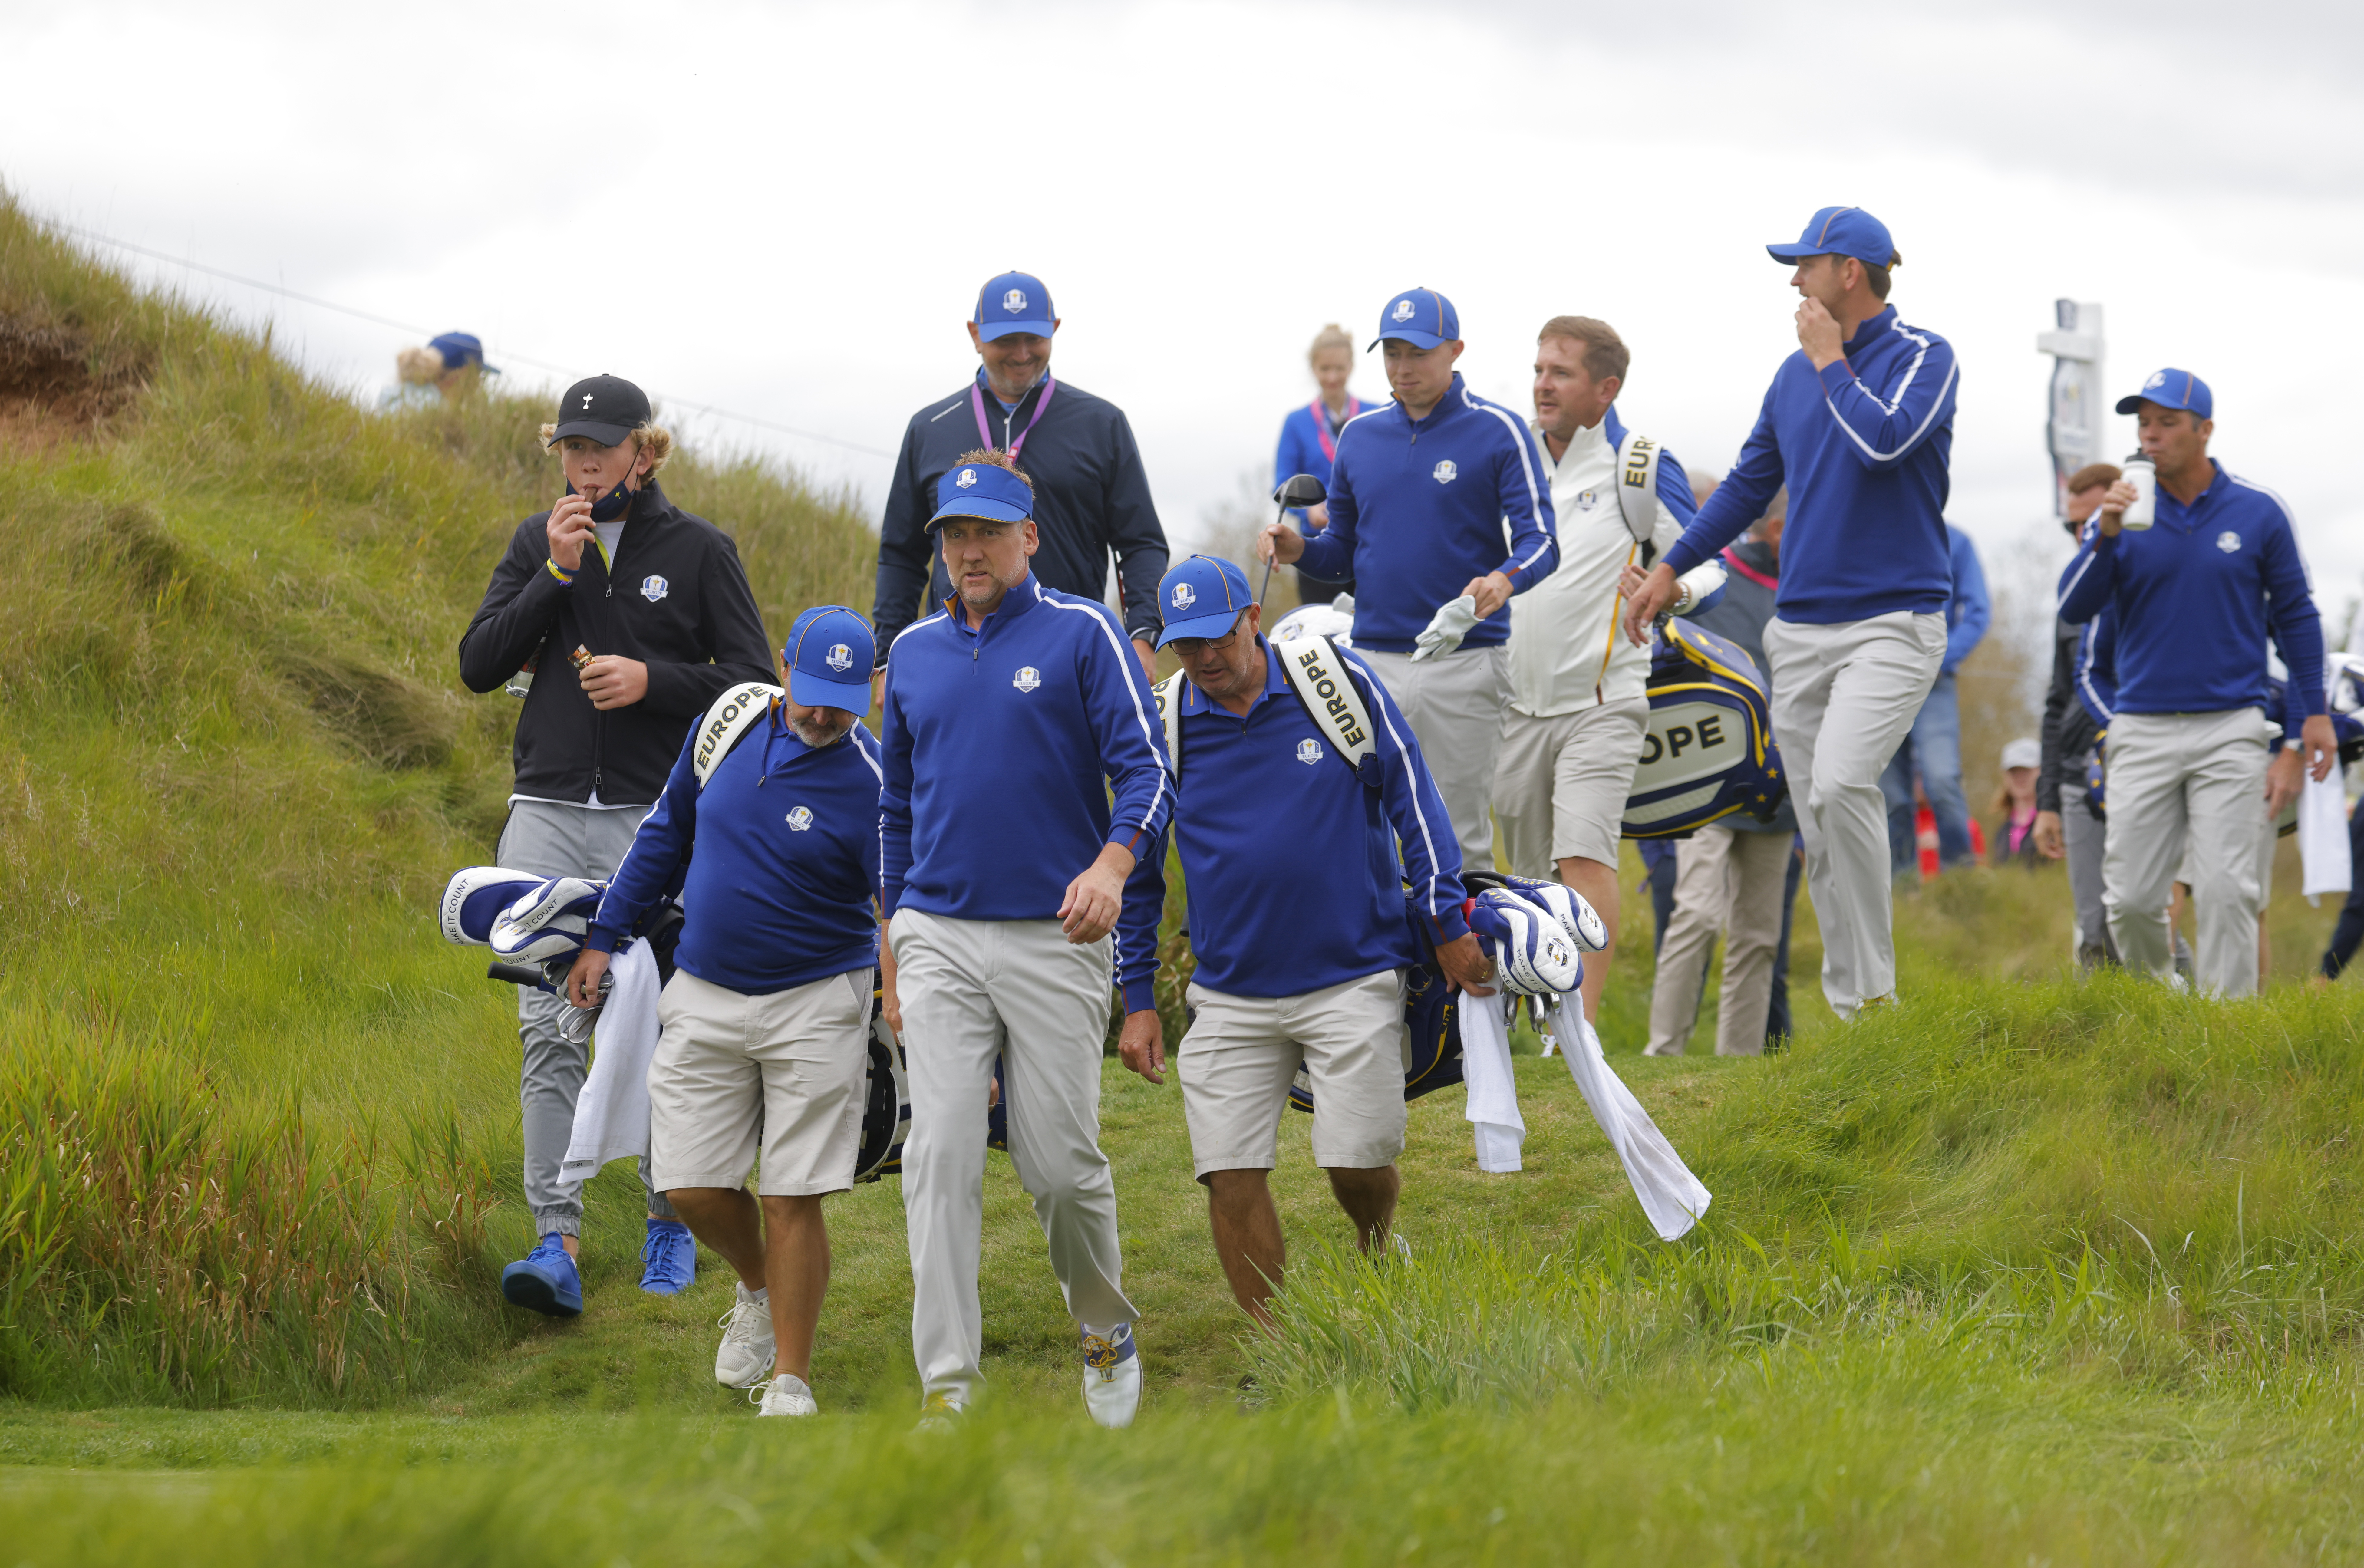 Golf - The 2020 Ryder Cup - Whistling Straits, Sheboygan, Wisconsin, U.S. - September 21, 2021 Team Europe's Ian Poulter, Team Europe's Paul Casey, Team Europe's Matthew Fitzpatrick and Team Europe's Bernd Wiesberger during a practice round REUTERS/Mike Segar